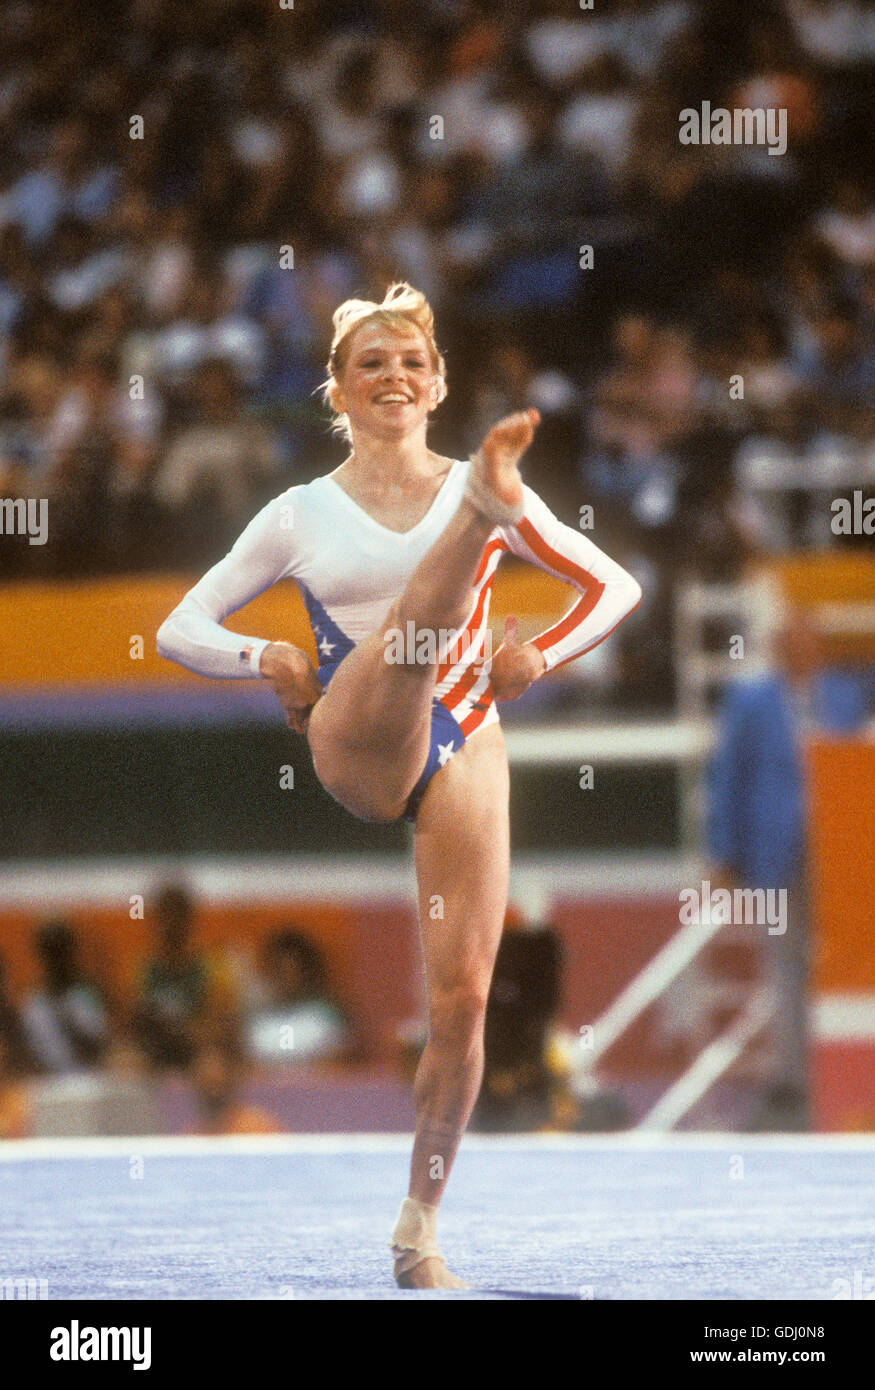 Julianne McNamara performs in floor exercise competition at 1984 Olympic Games in Los Angeles. - Stock Image